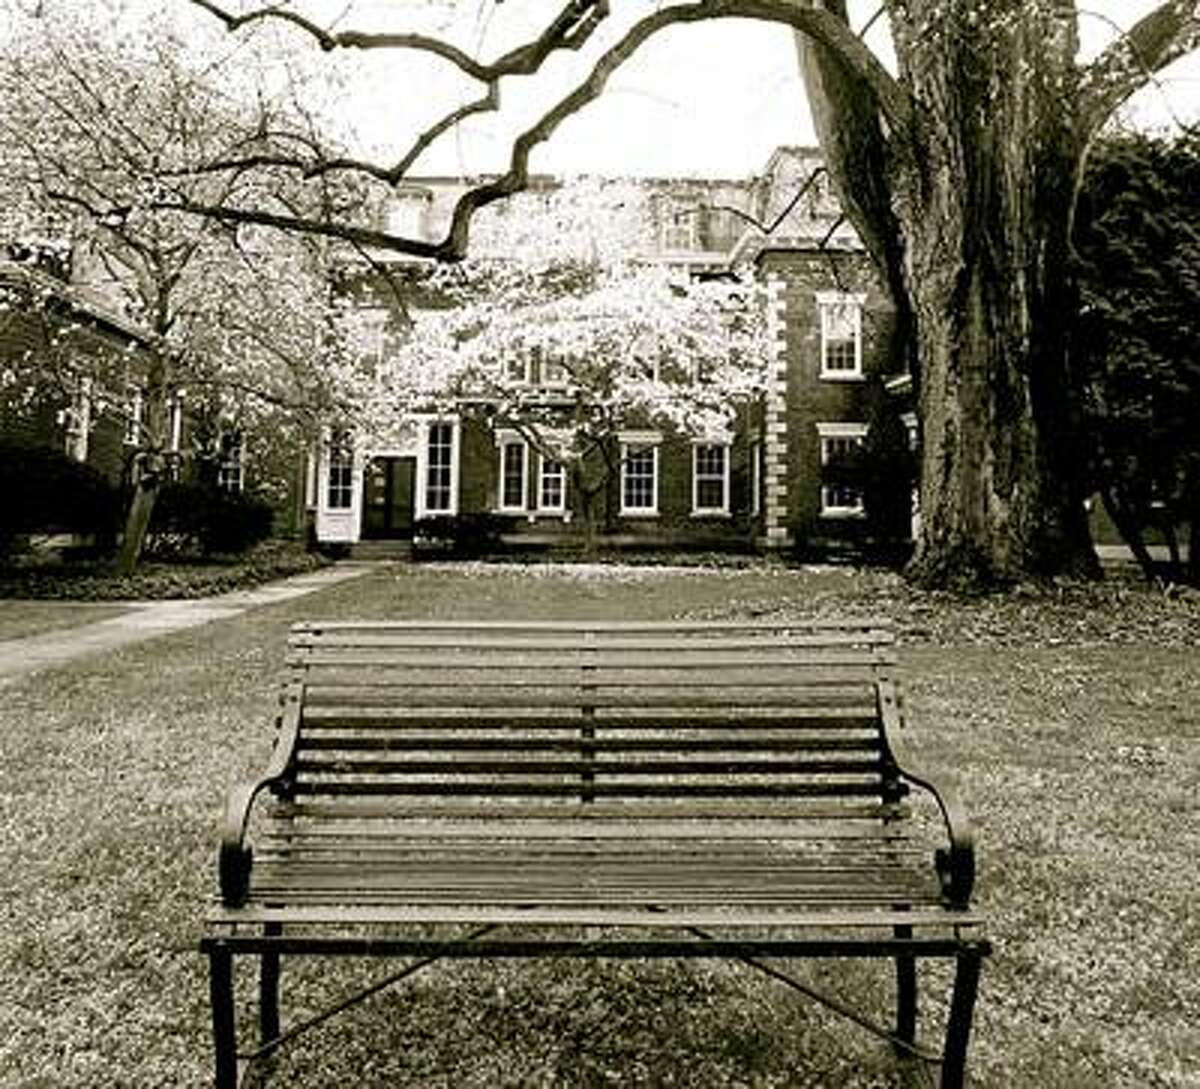 Alexandria Pisarczyk's winning photo for the Oneida Community Mansion House's photography contest.